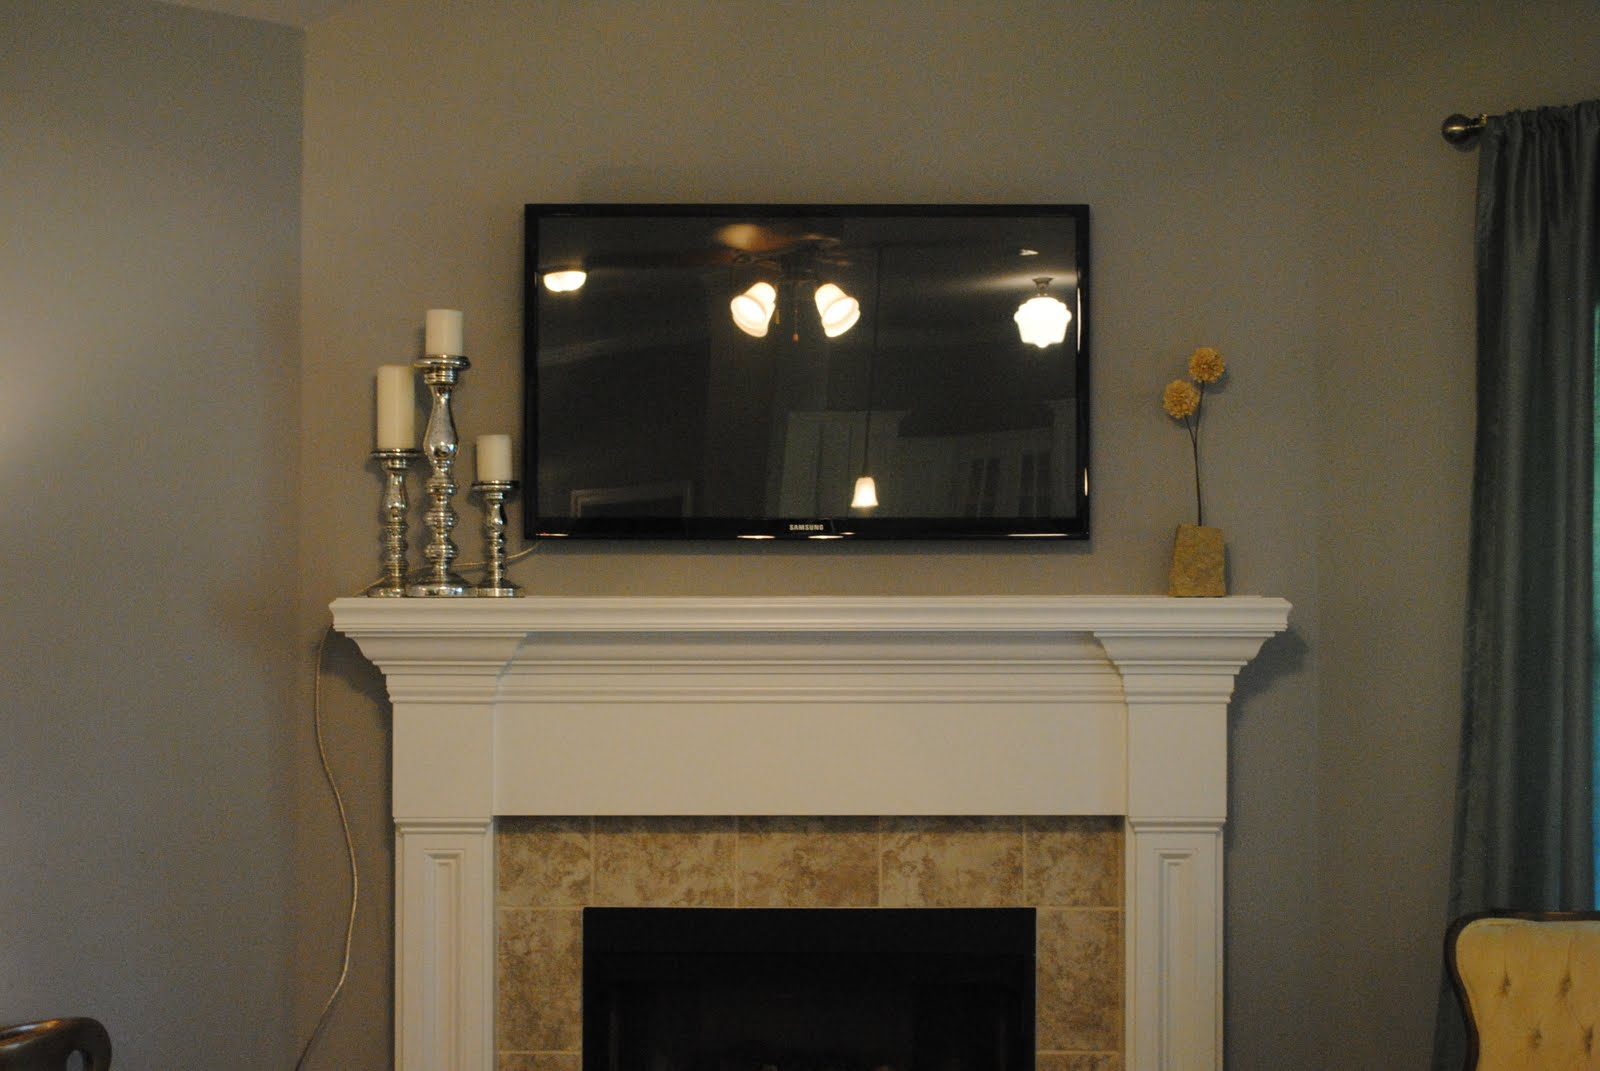 Tv Over Fireplace Ideas Where Is Cable Box Ask Home Design